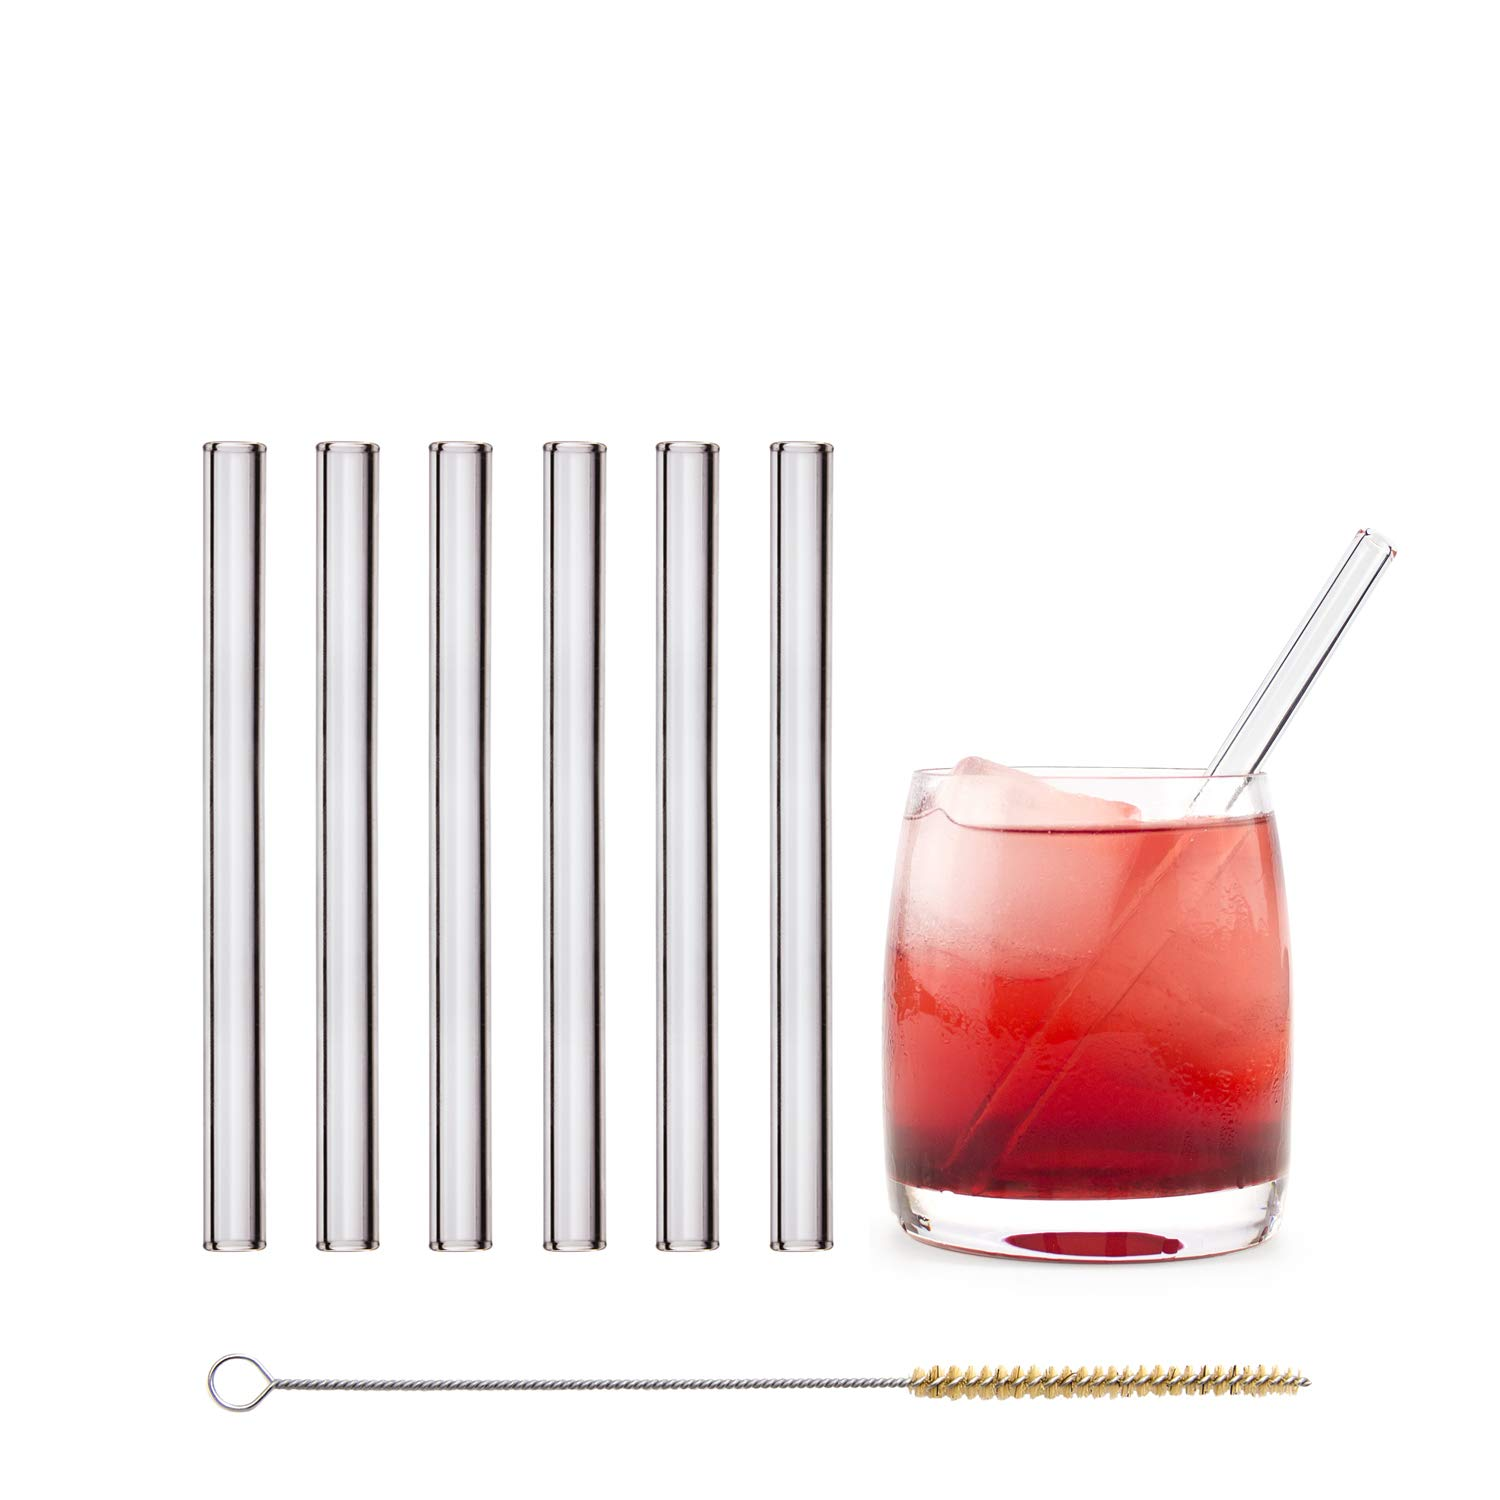 HALM  Glass Straws - 6 Reusable Drinking Straws + Plastic-Free Cleaning Brush - Made in Germany - Dishwasher Safe - Eco-Friendly - 15 cm (6 in) x 0.9 cm - Straight - Perfect for Smoothies, Cocktails by HÅLM